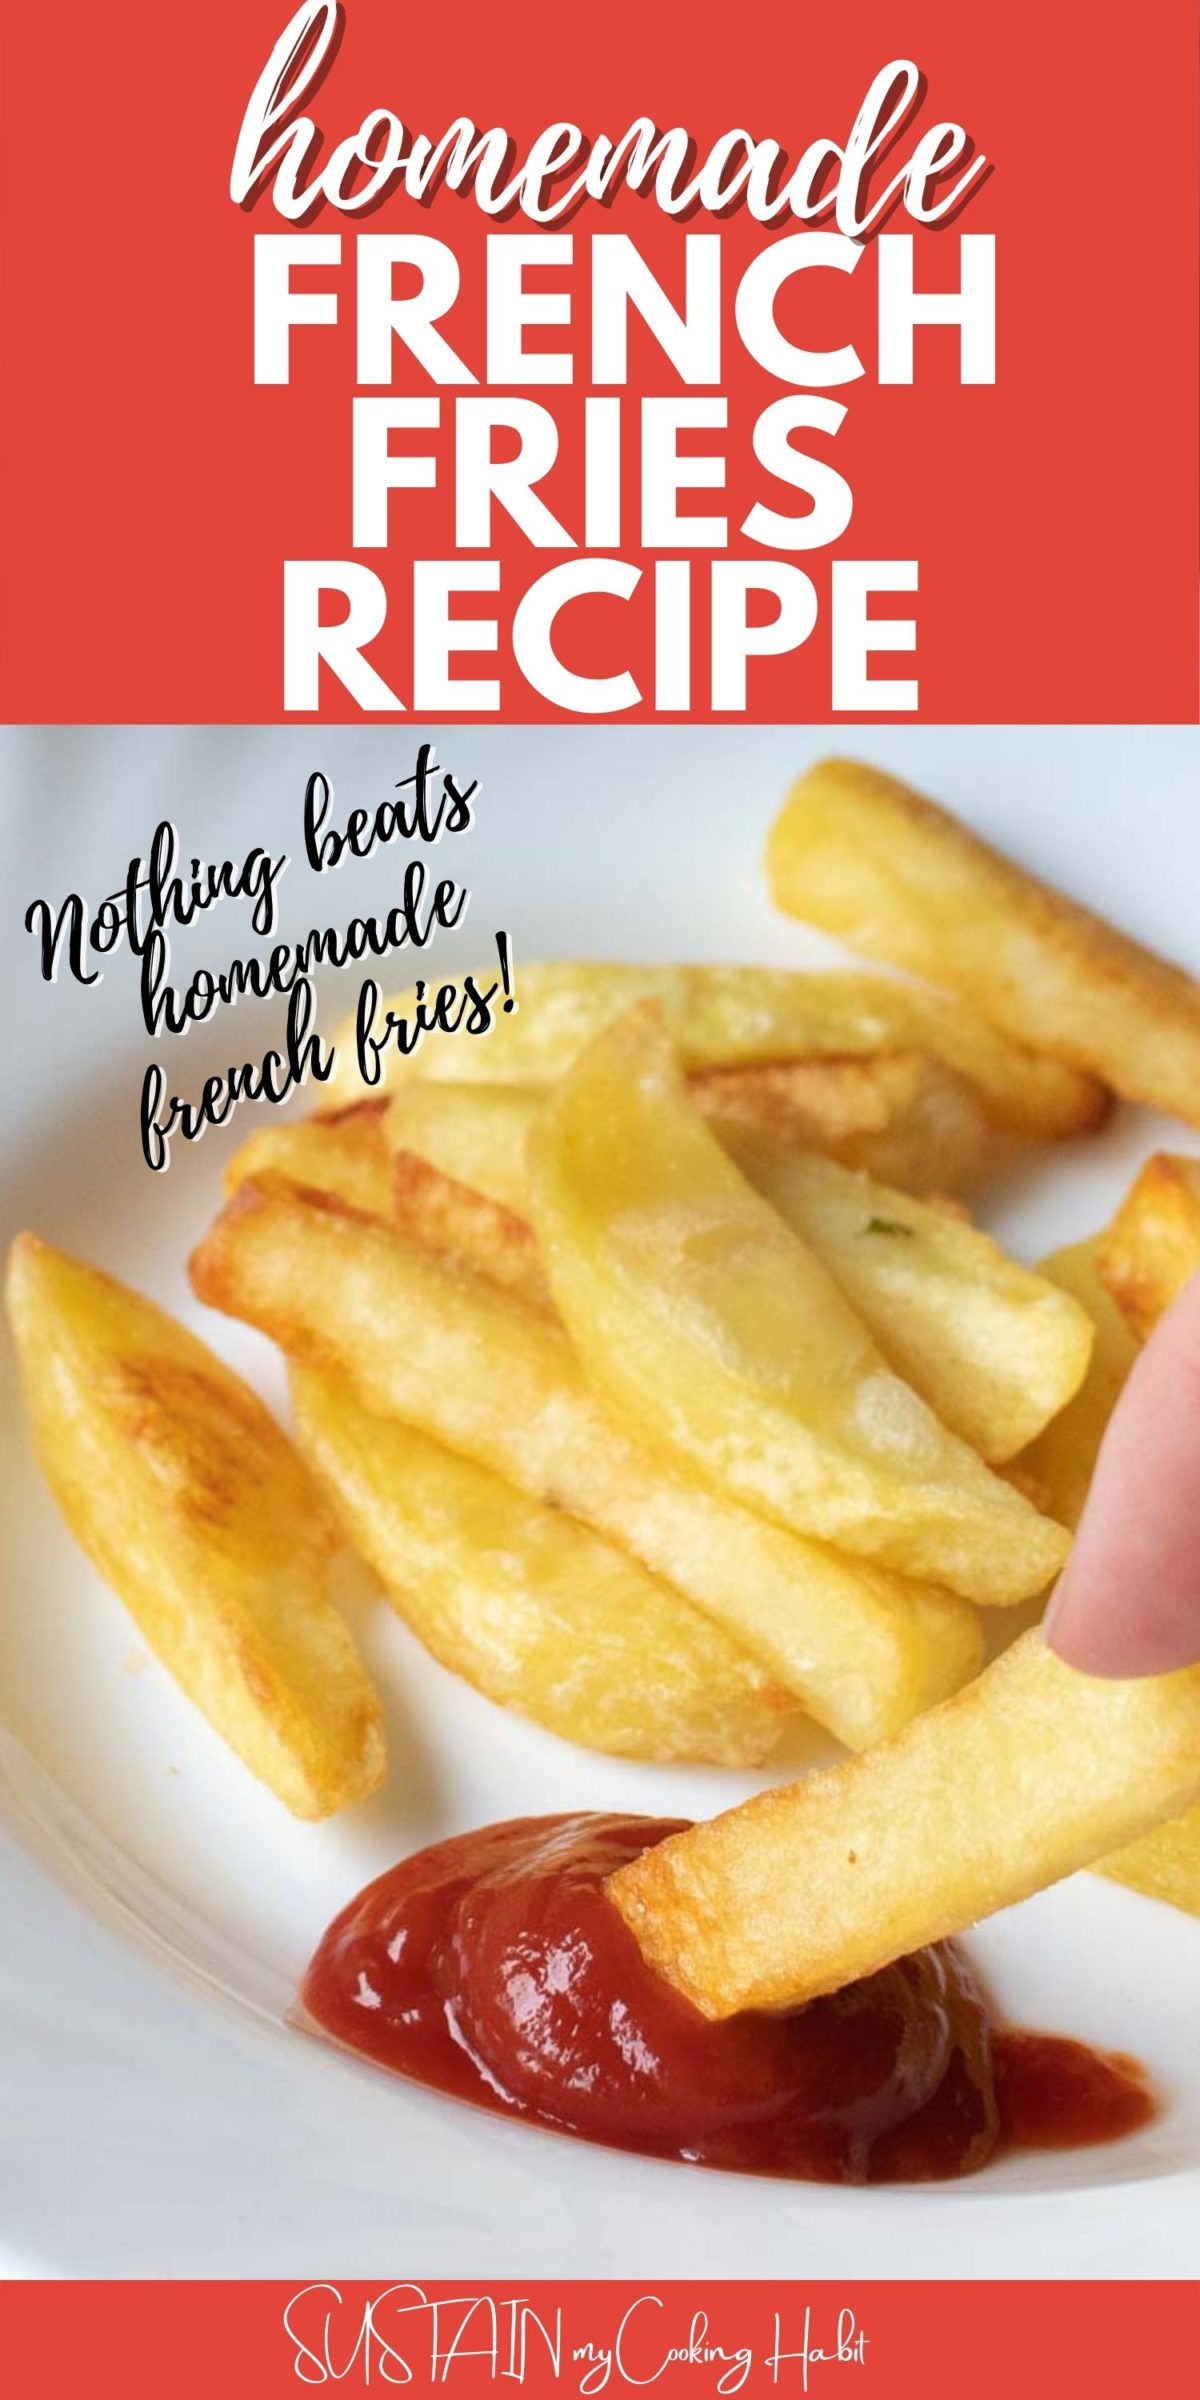 Homemade french fry being dipped in ketchup with text overlay.